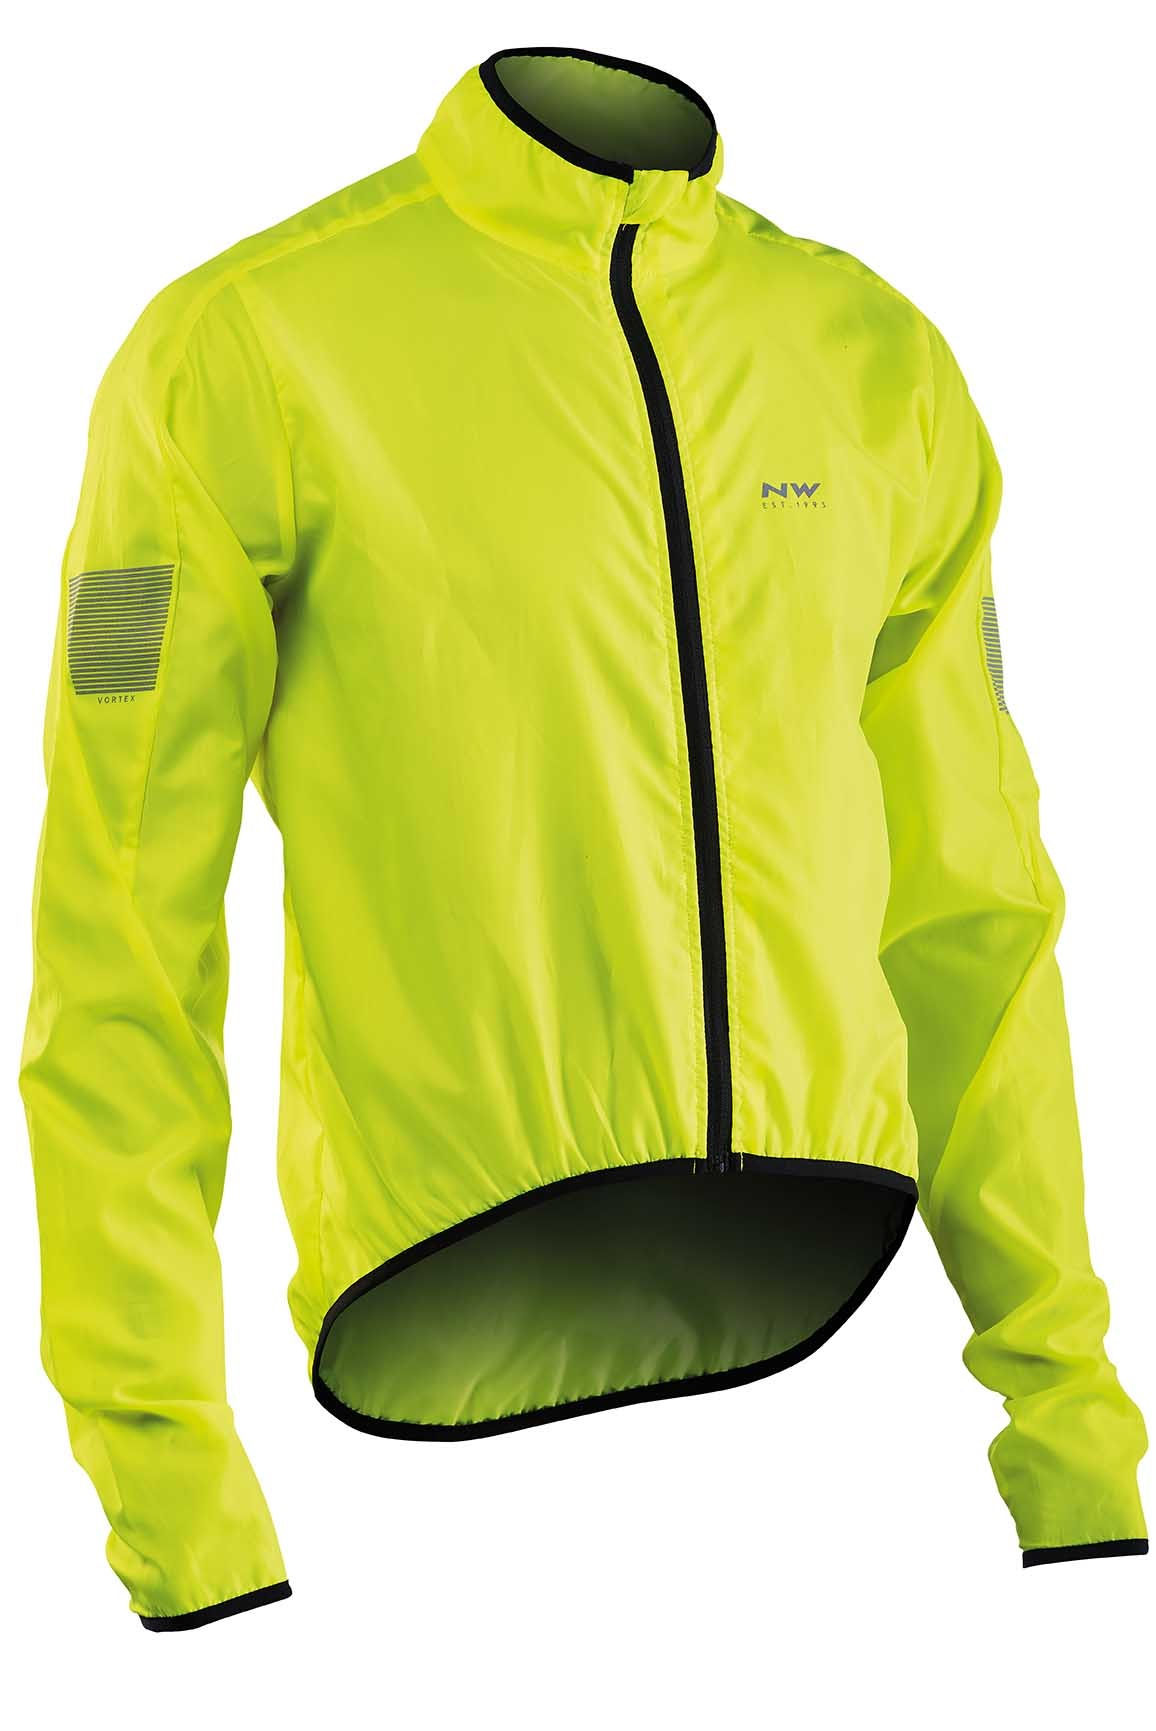 Giacca Antivento e Idrorepellente Ciclismo Northwave Vortex Jacket  YELLOW FLUO